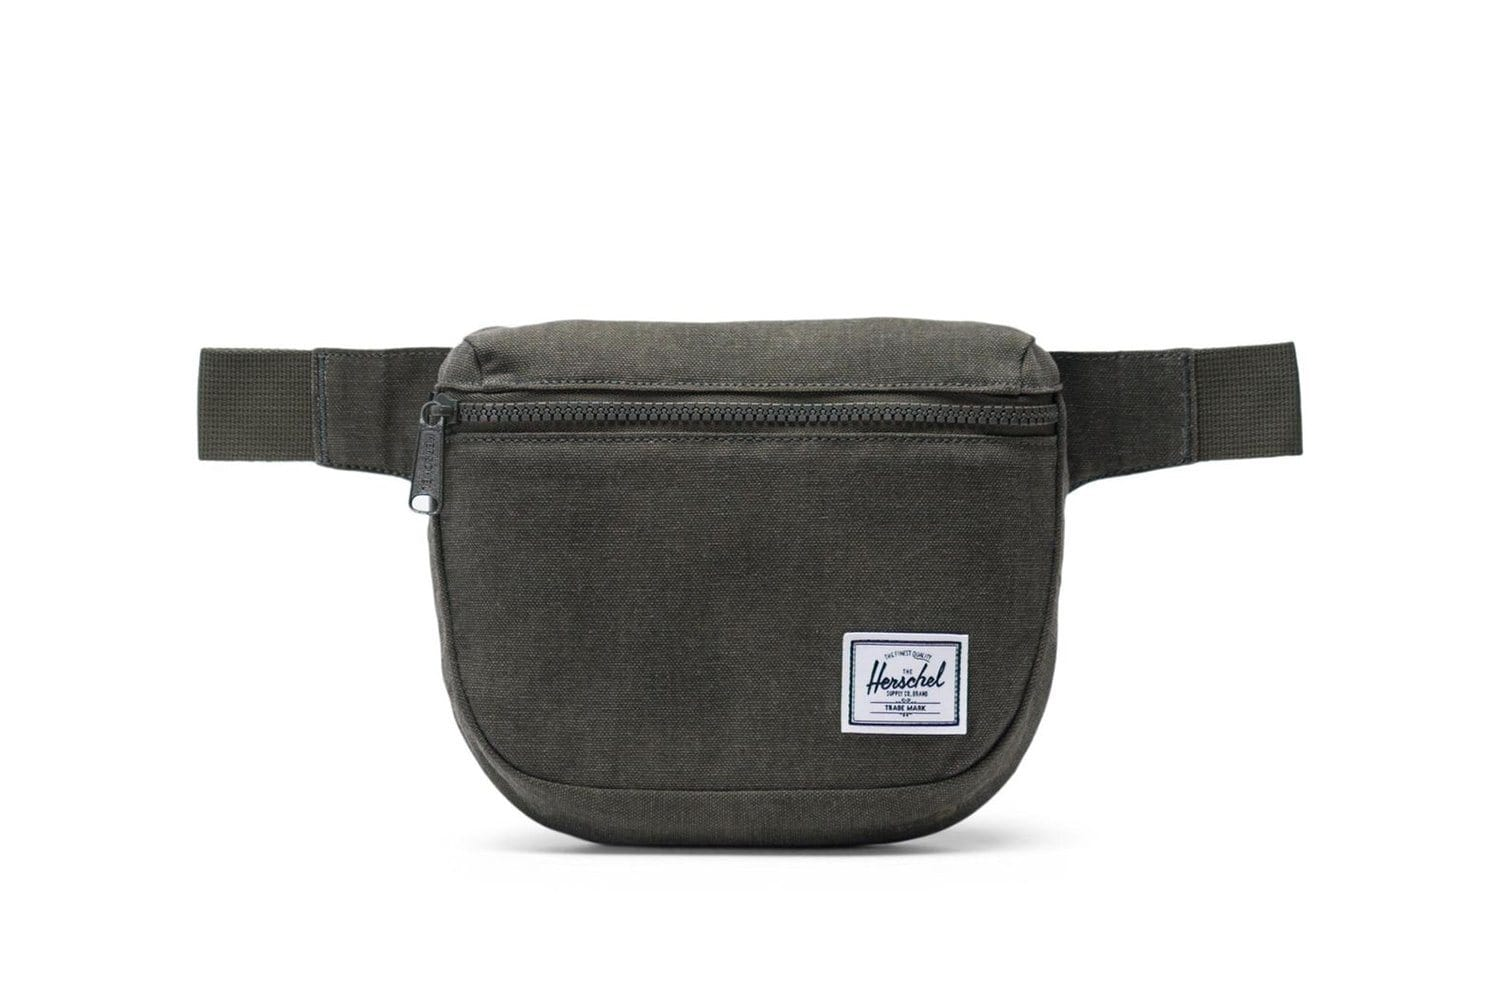 FIFTEEN CANVAS FRST NIGHT ACCESSORIES HERSCHEL FRST NIGHT OS